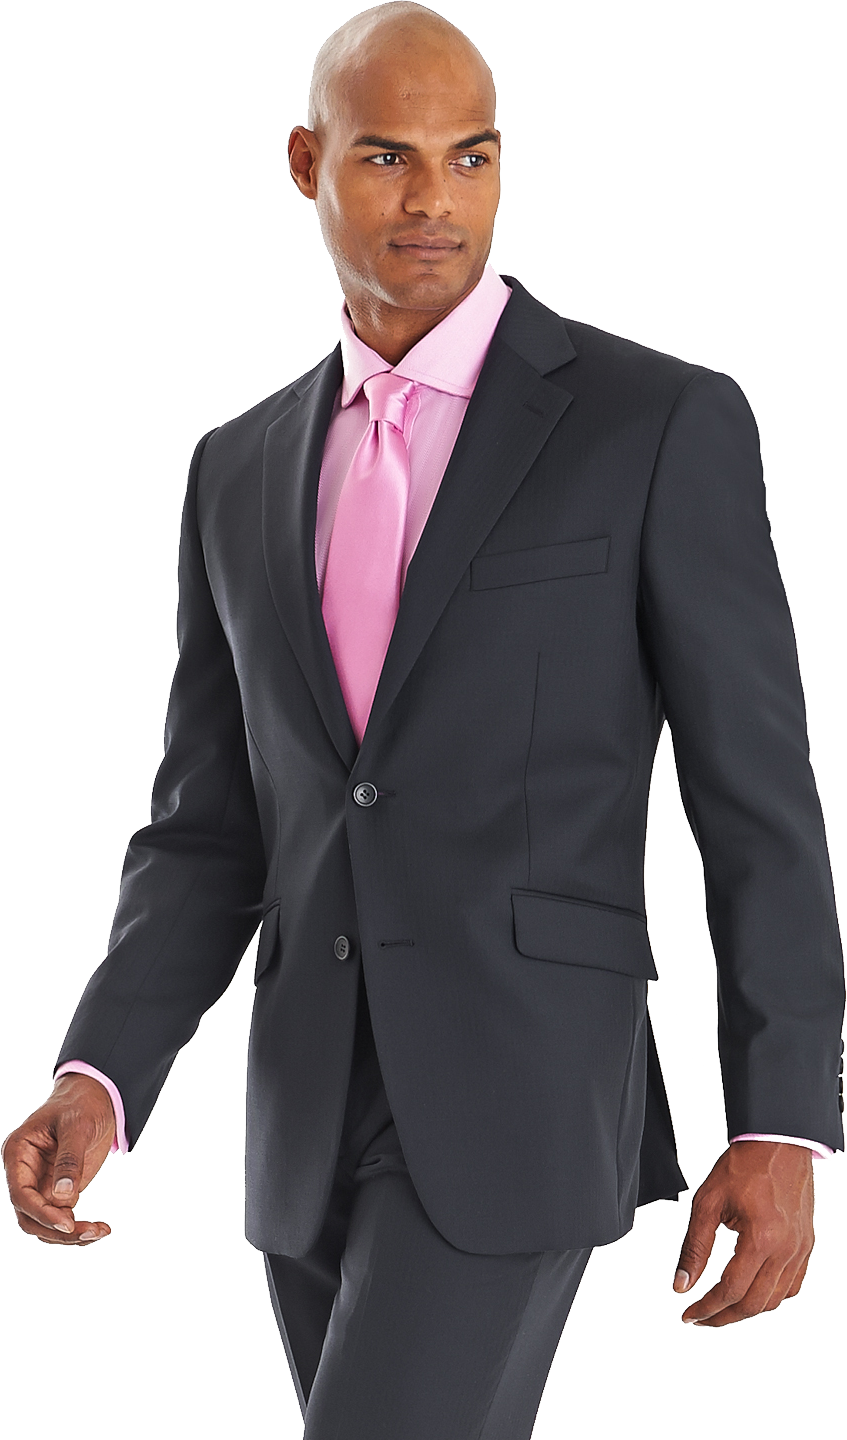 suit png image collection download #12469